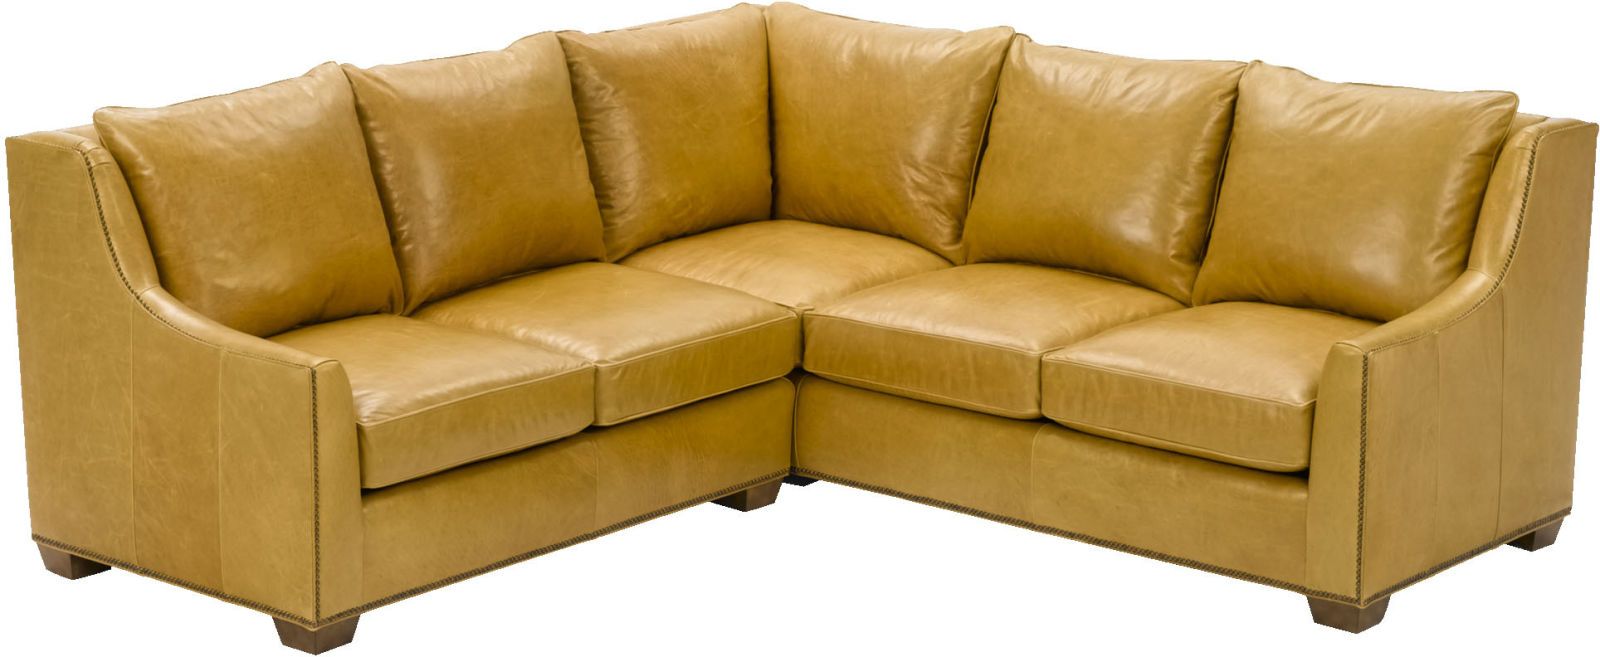 L1904 BARRETT Sectional  sc 1 st  WESLEY HALL : wesley hall sectional - Sectionals, Sofas & Couches